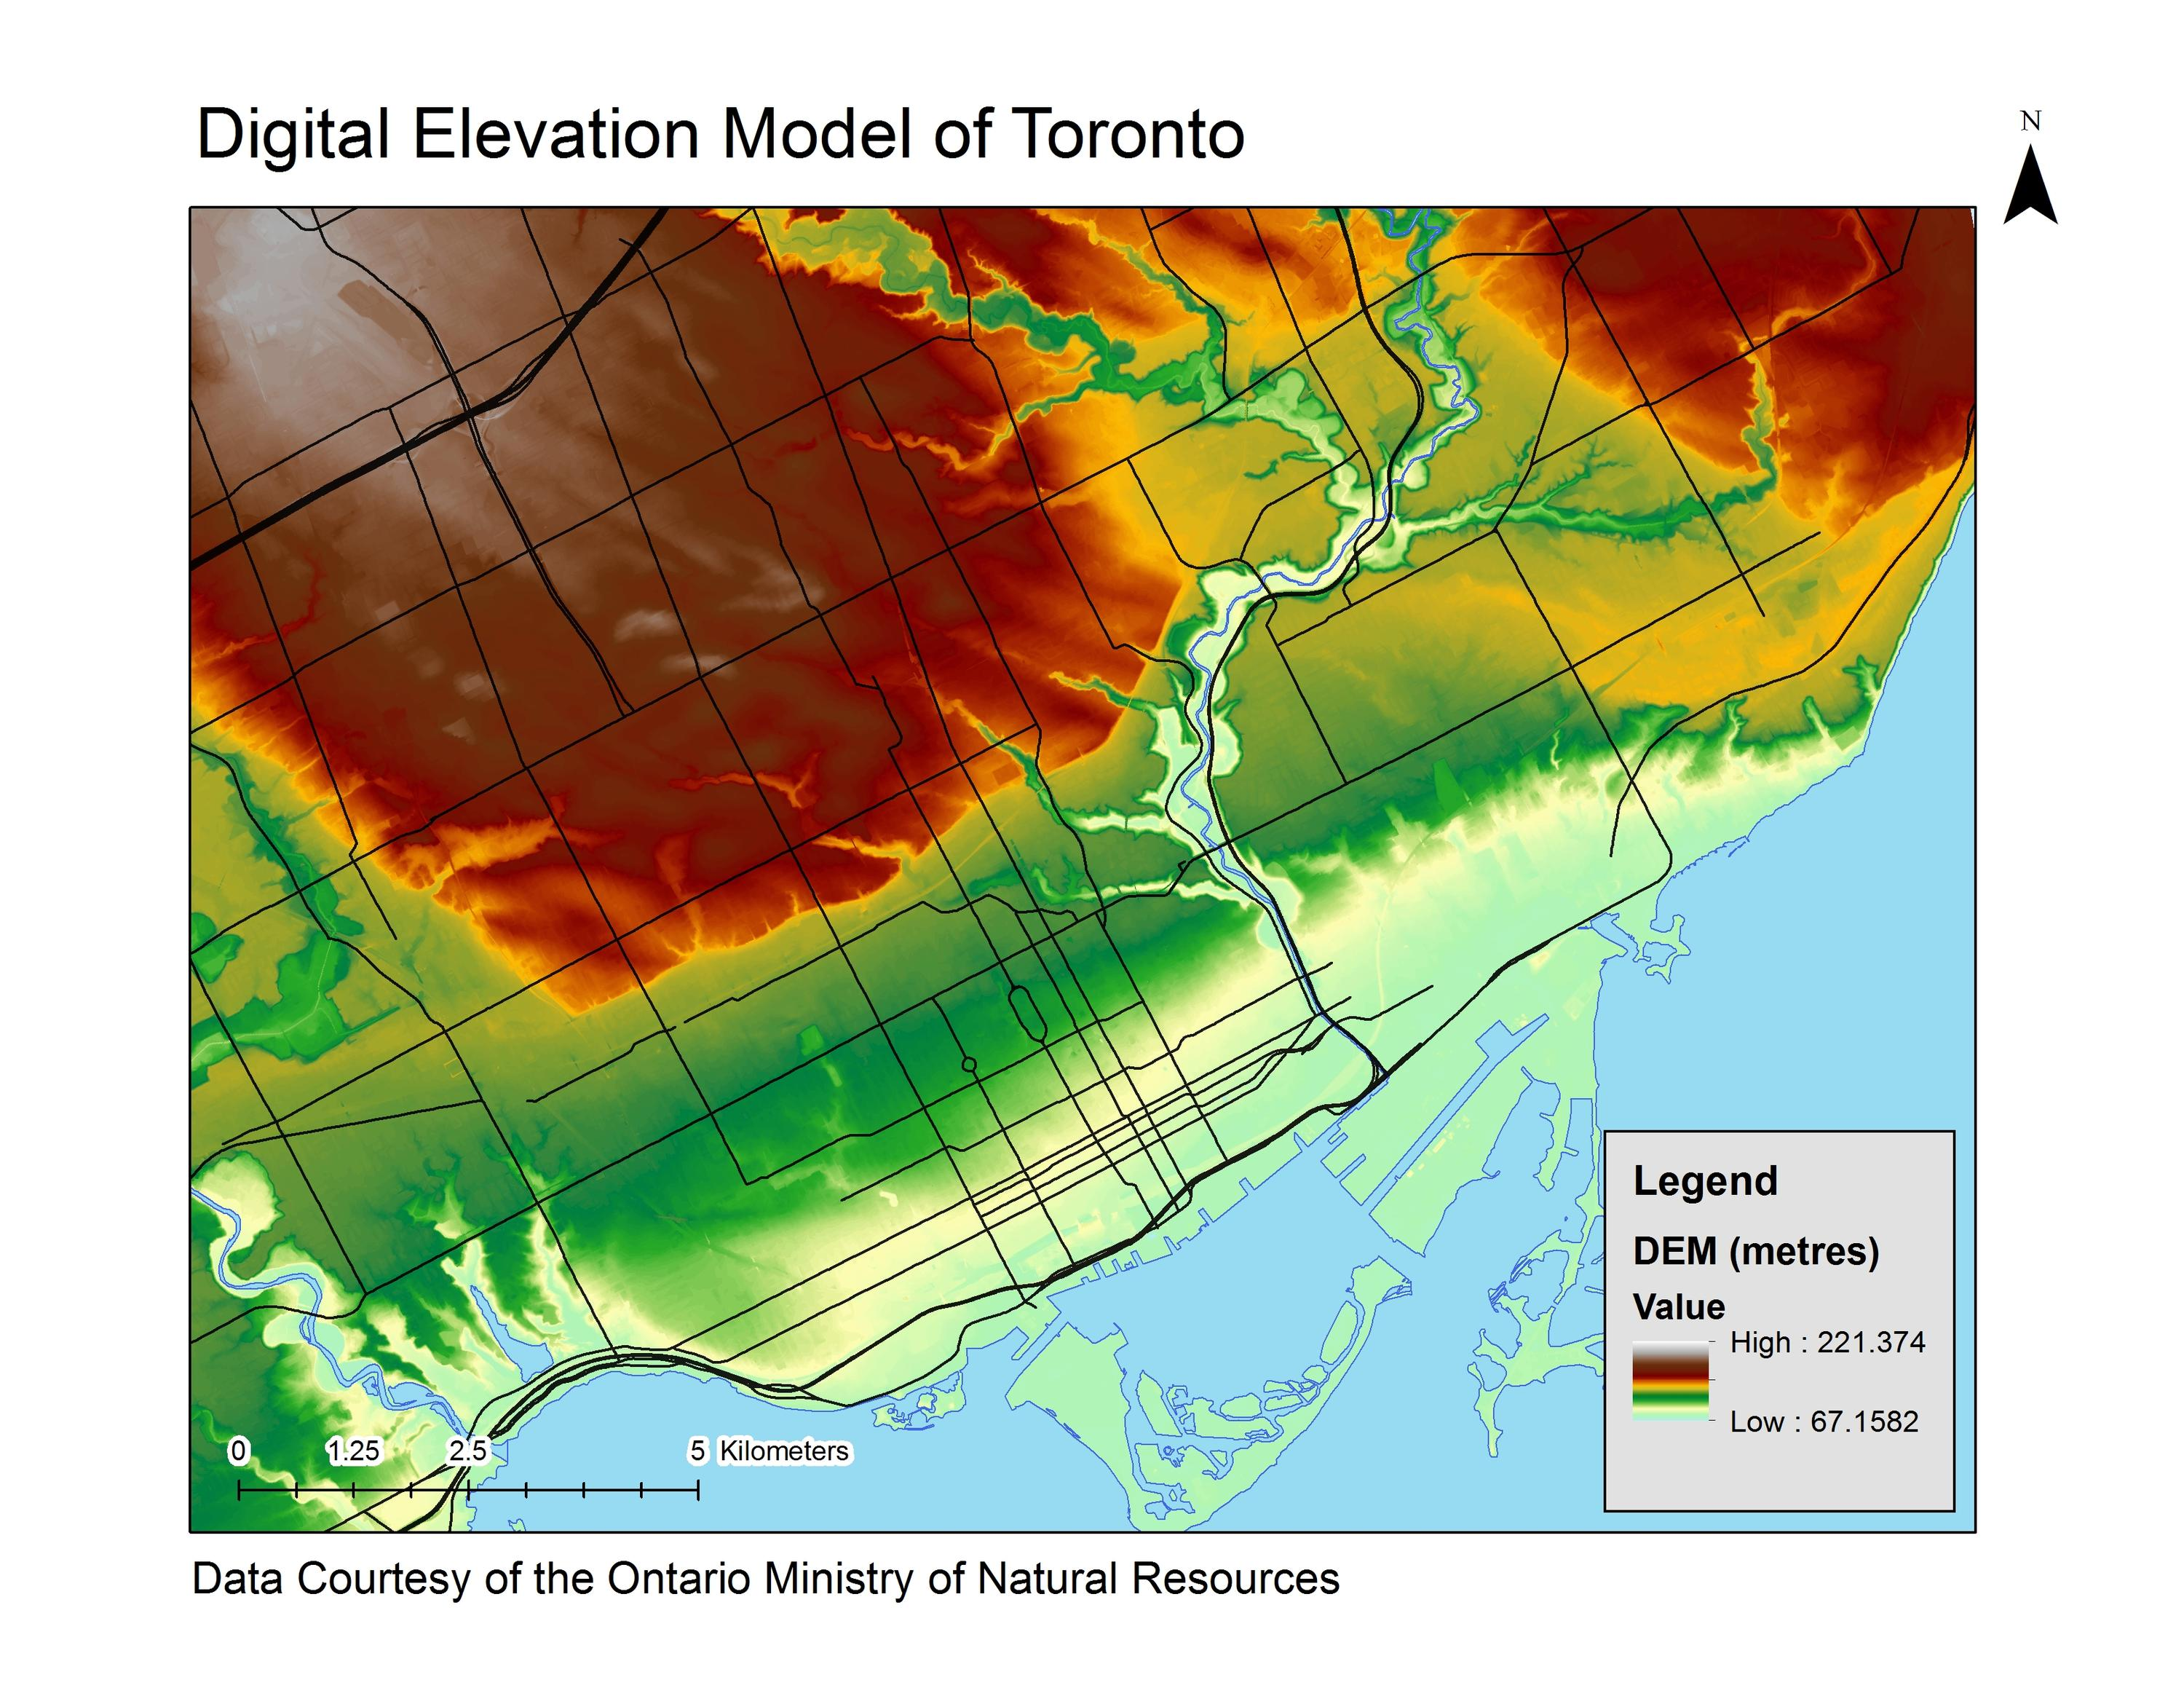 Ontario Ministry of Natural Resources (OMNR): Digital